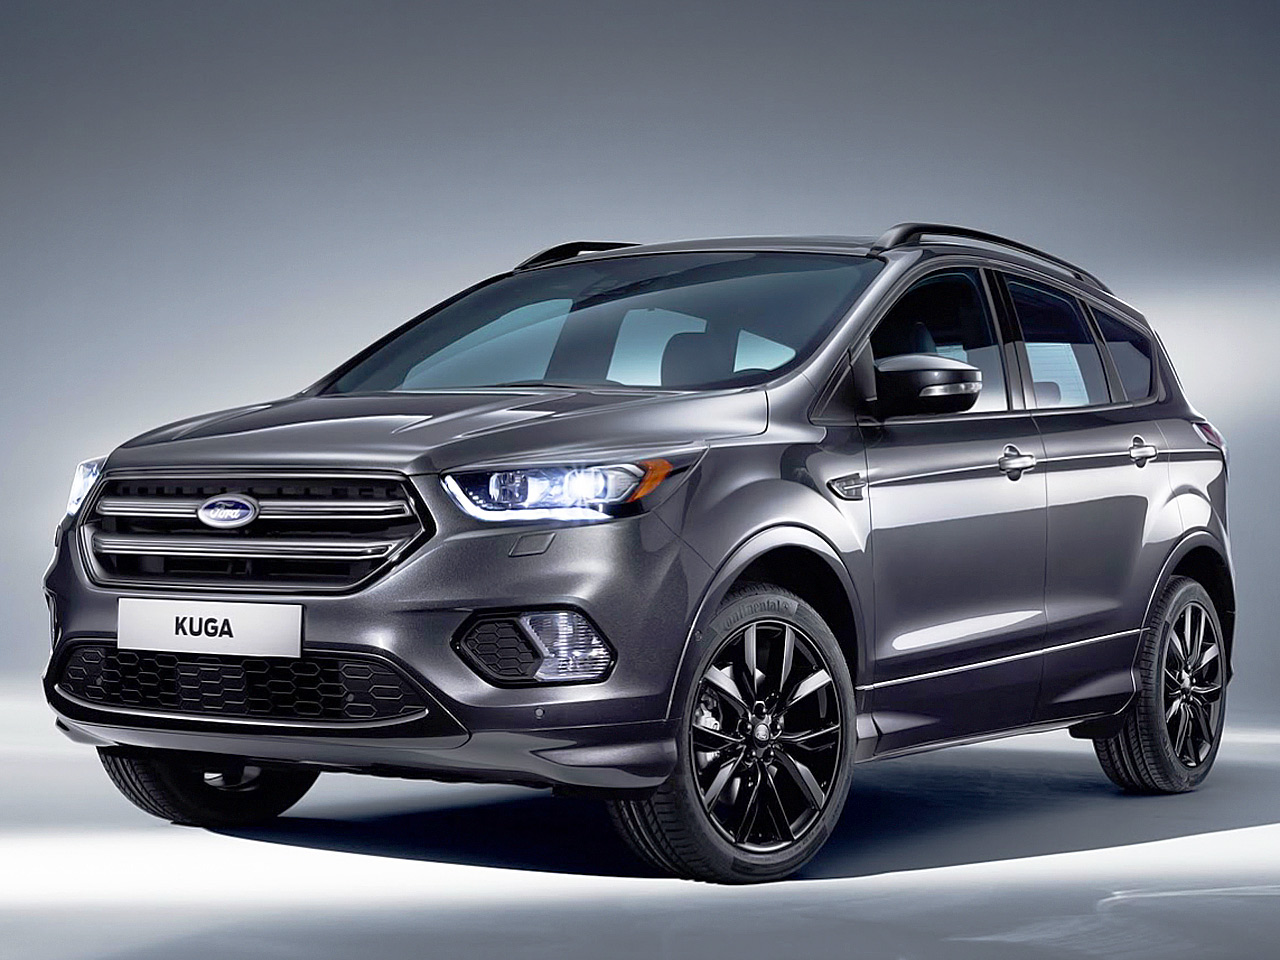 ford kuga facelift 2016 preis motor. Black Bedroom Furniture Sets. Home Design Ideas